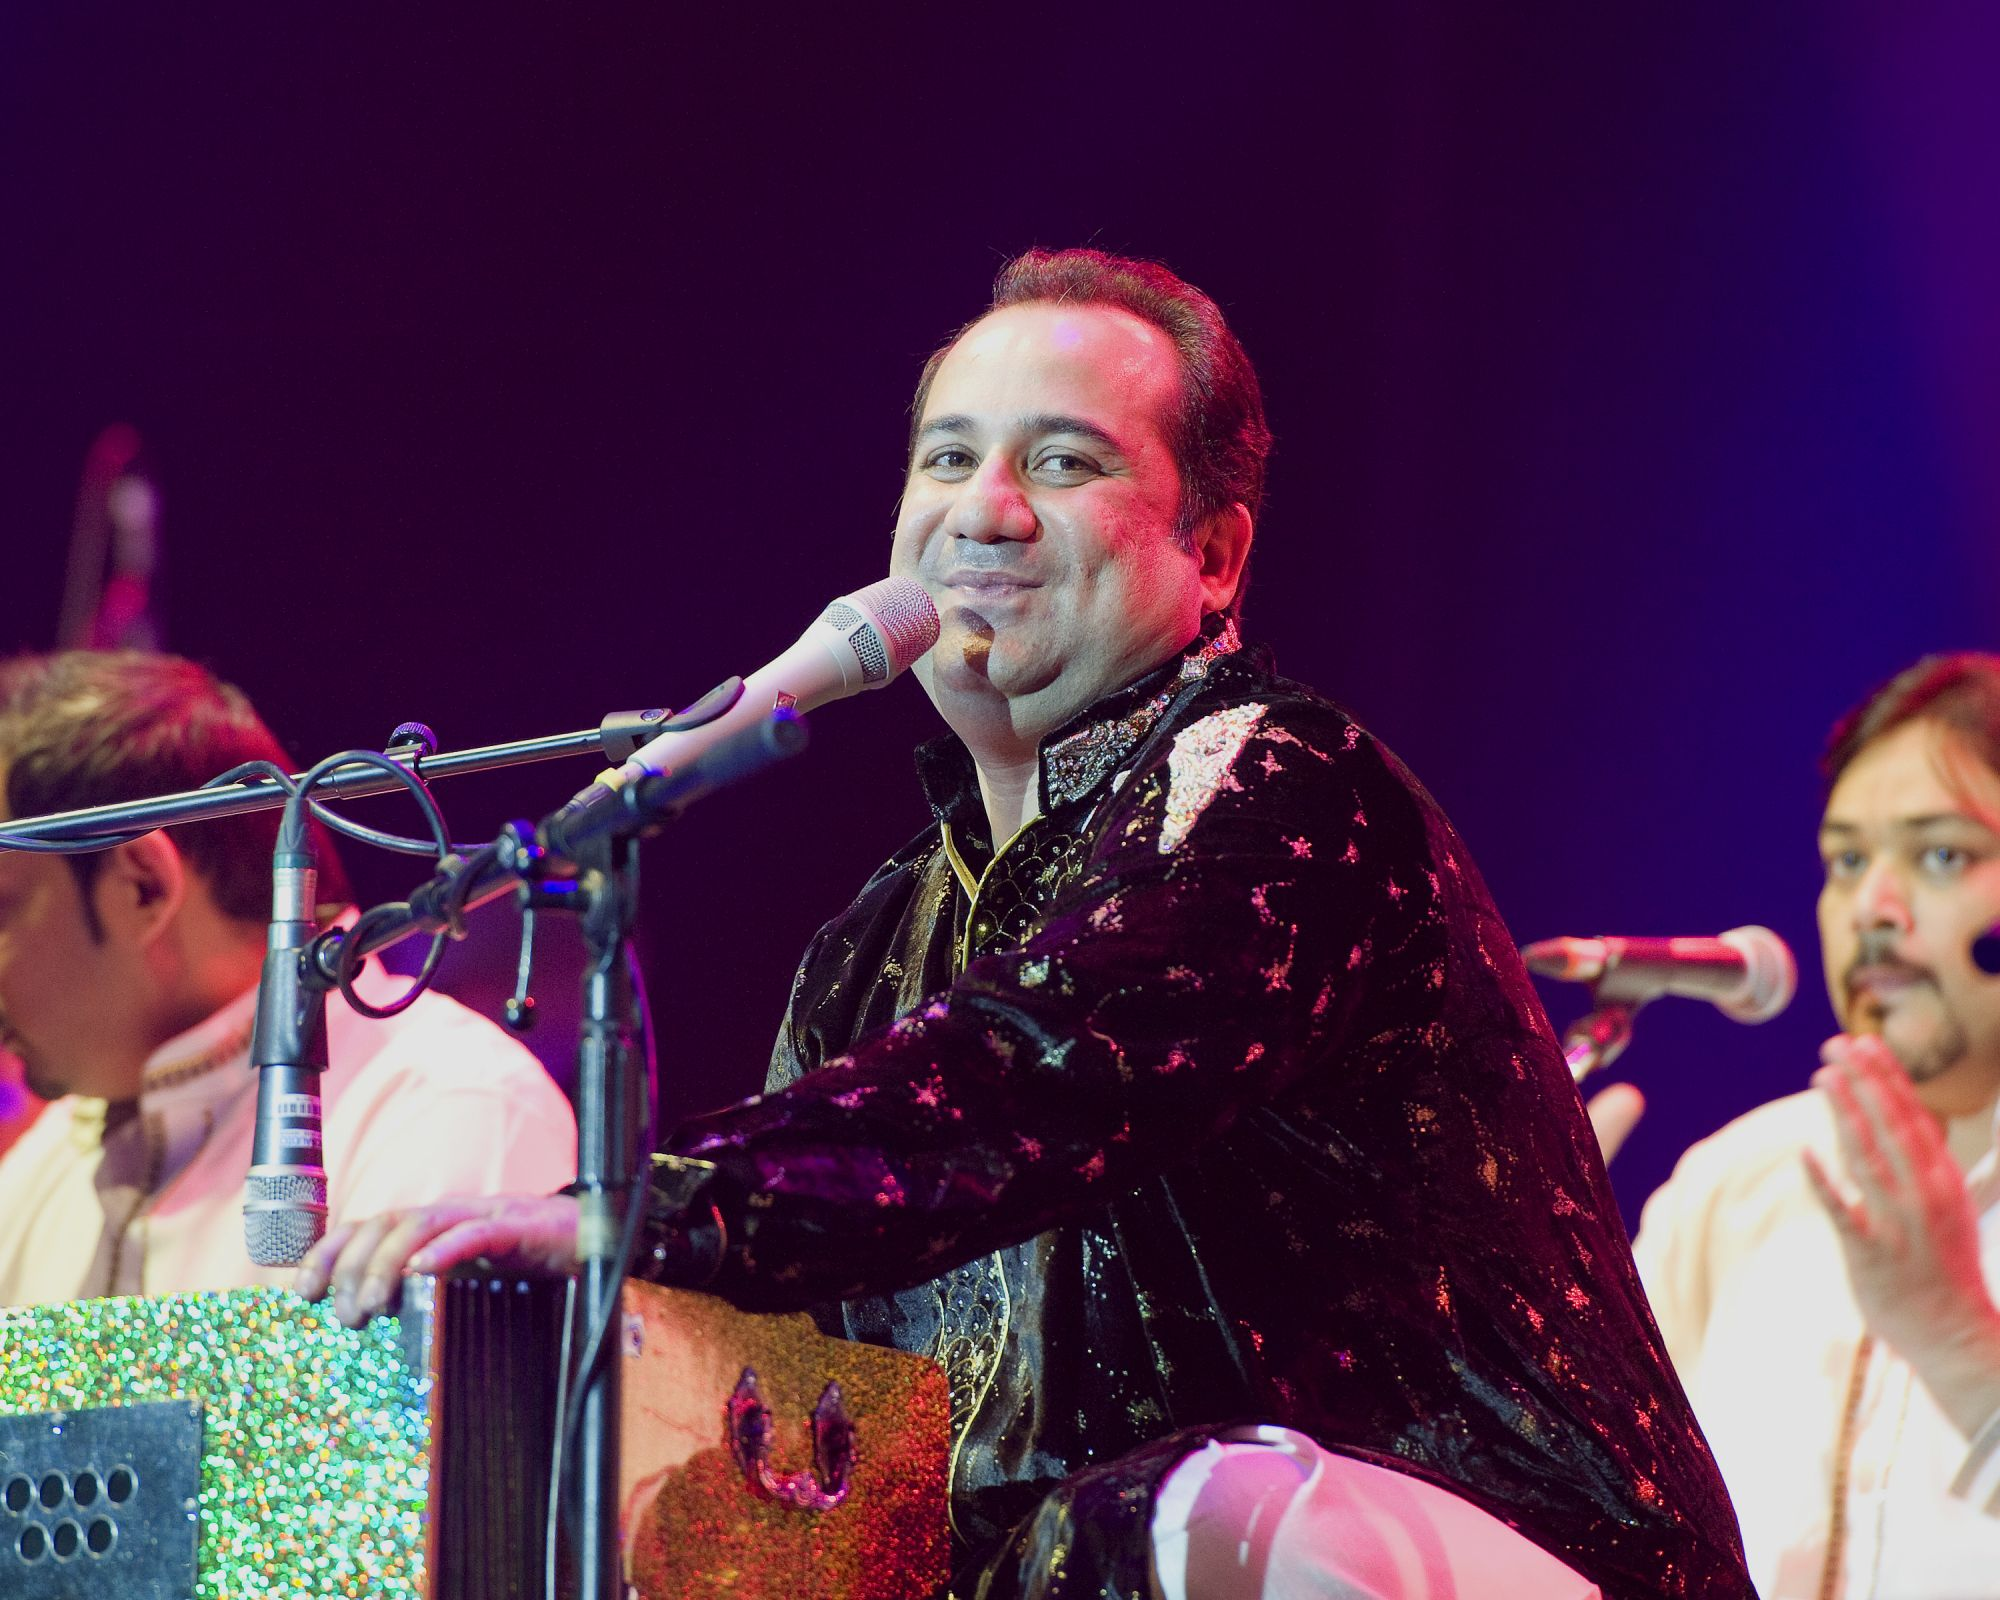 LONDON, UNITED KINGDOM - AUGUST 25: Rahat Fateh Ali Khan performs on stage at O2 Arena on August 25, 2013 in London, England. (Photo by Robin Little/Redferns via Getty Images)